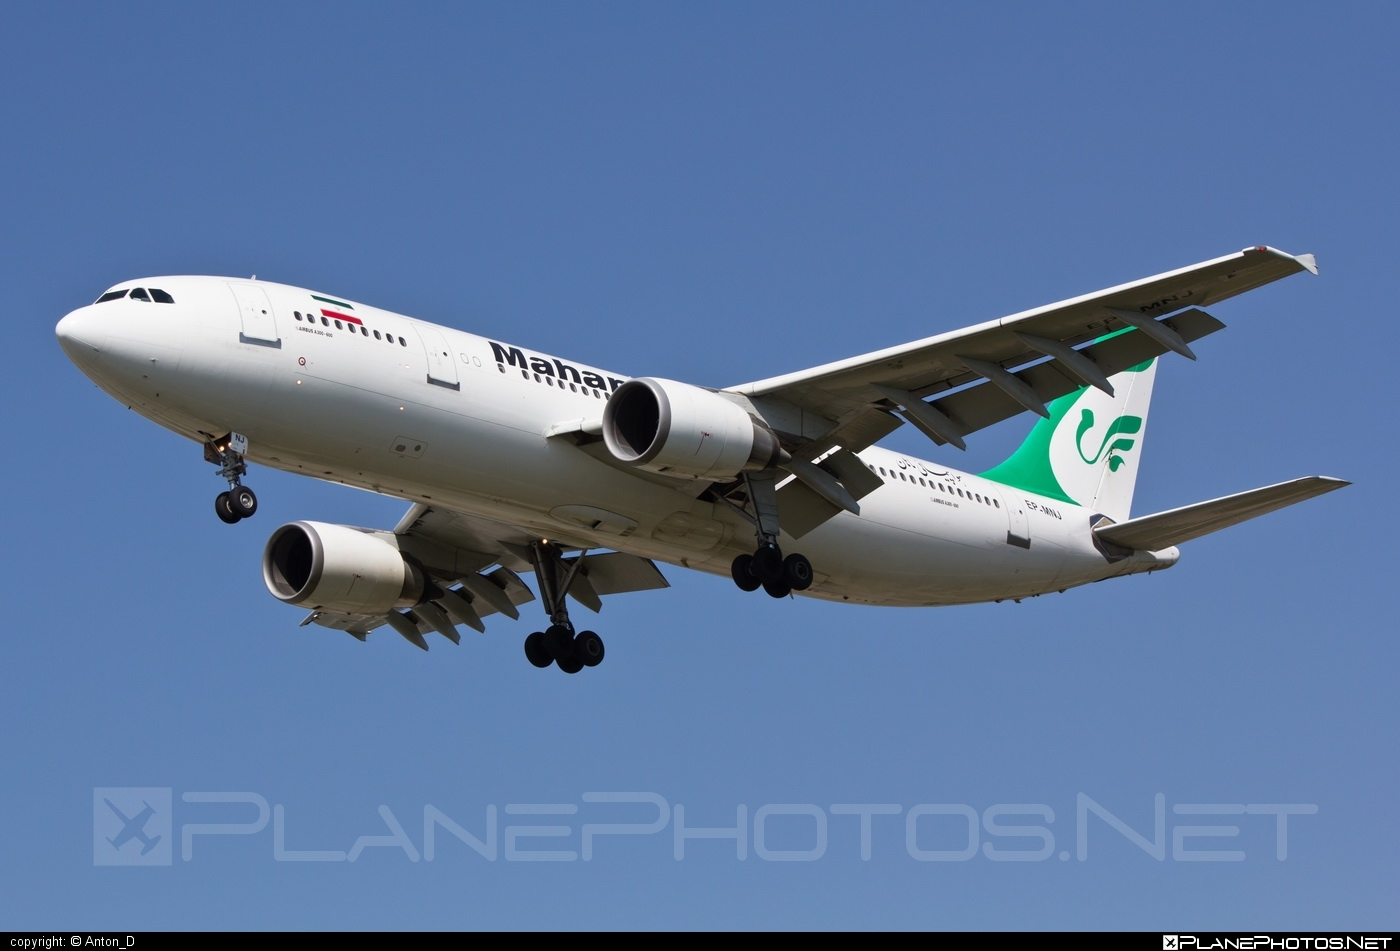 Airbus A300B4-603 - EP-MNJ operated by Mahan Air #a300 #airbus